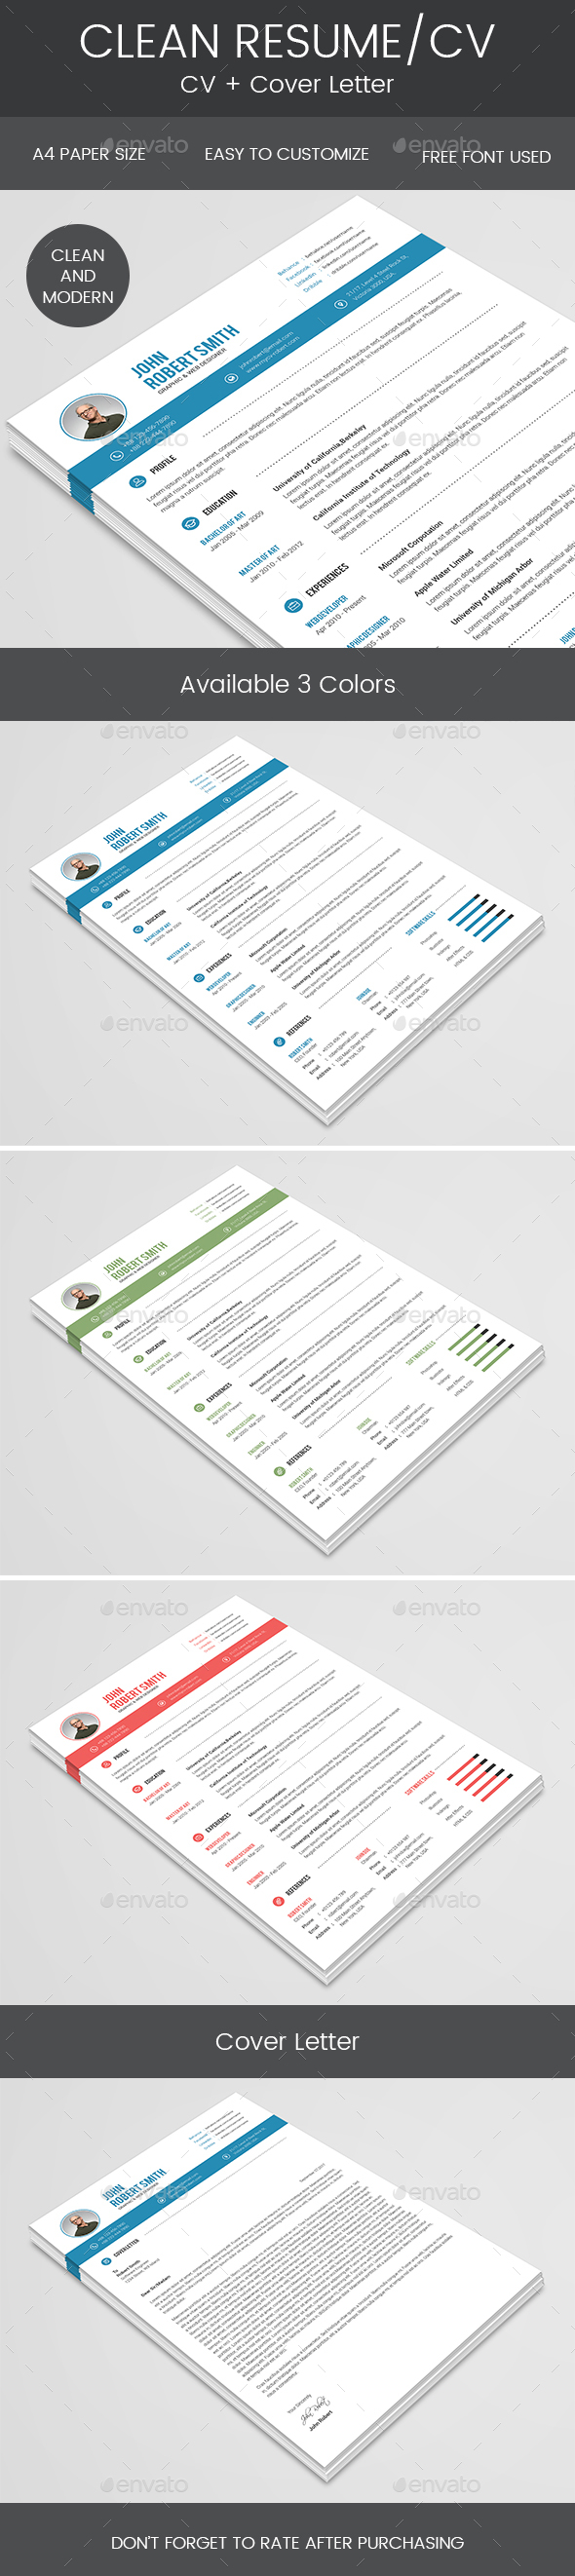 Clean Resume & Cover Letter Resumes Stationery Cover